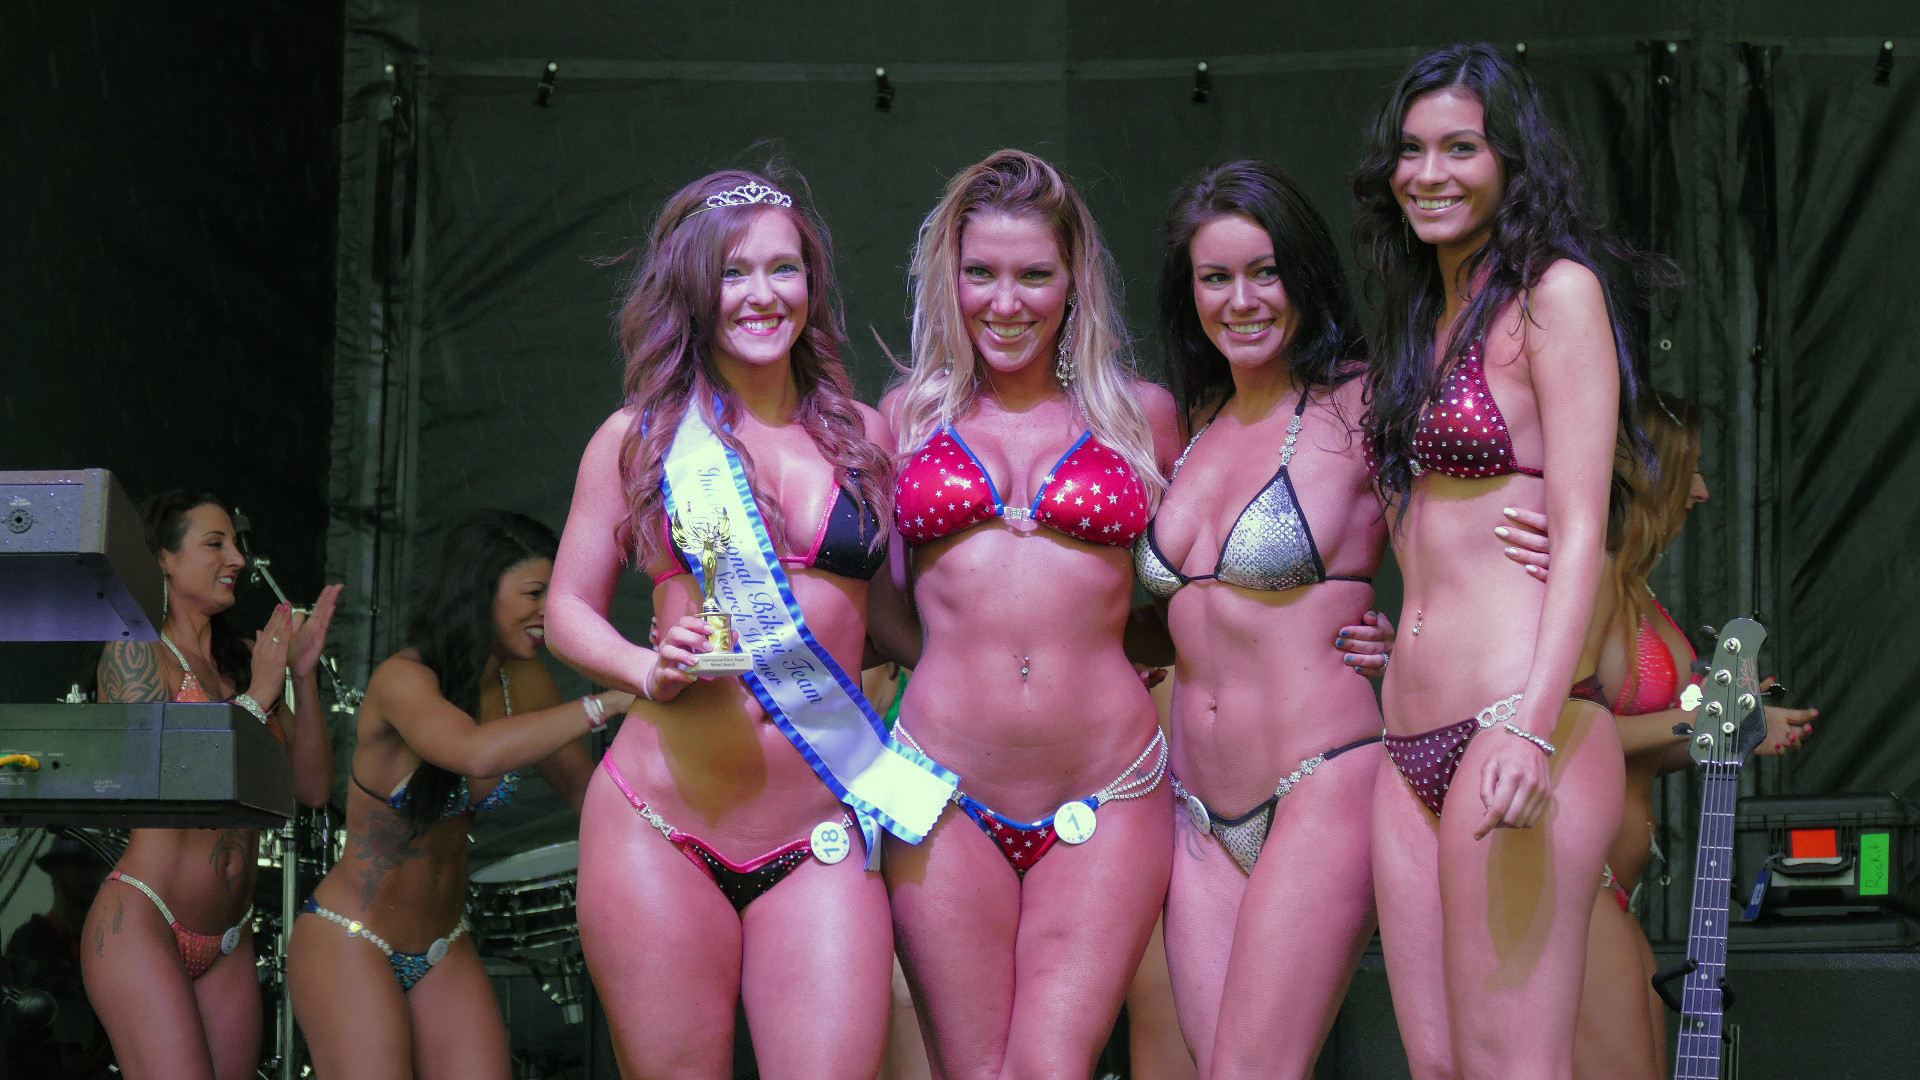 Bikini Contest Video 121